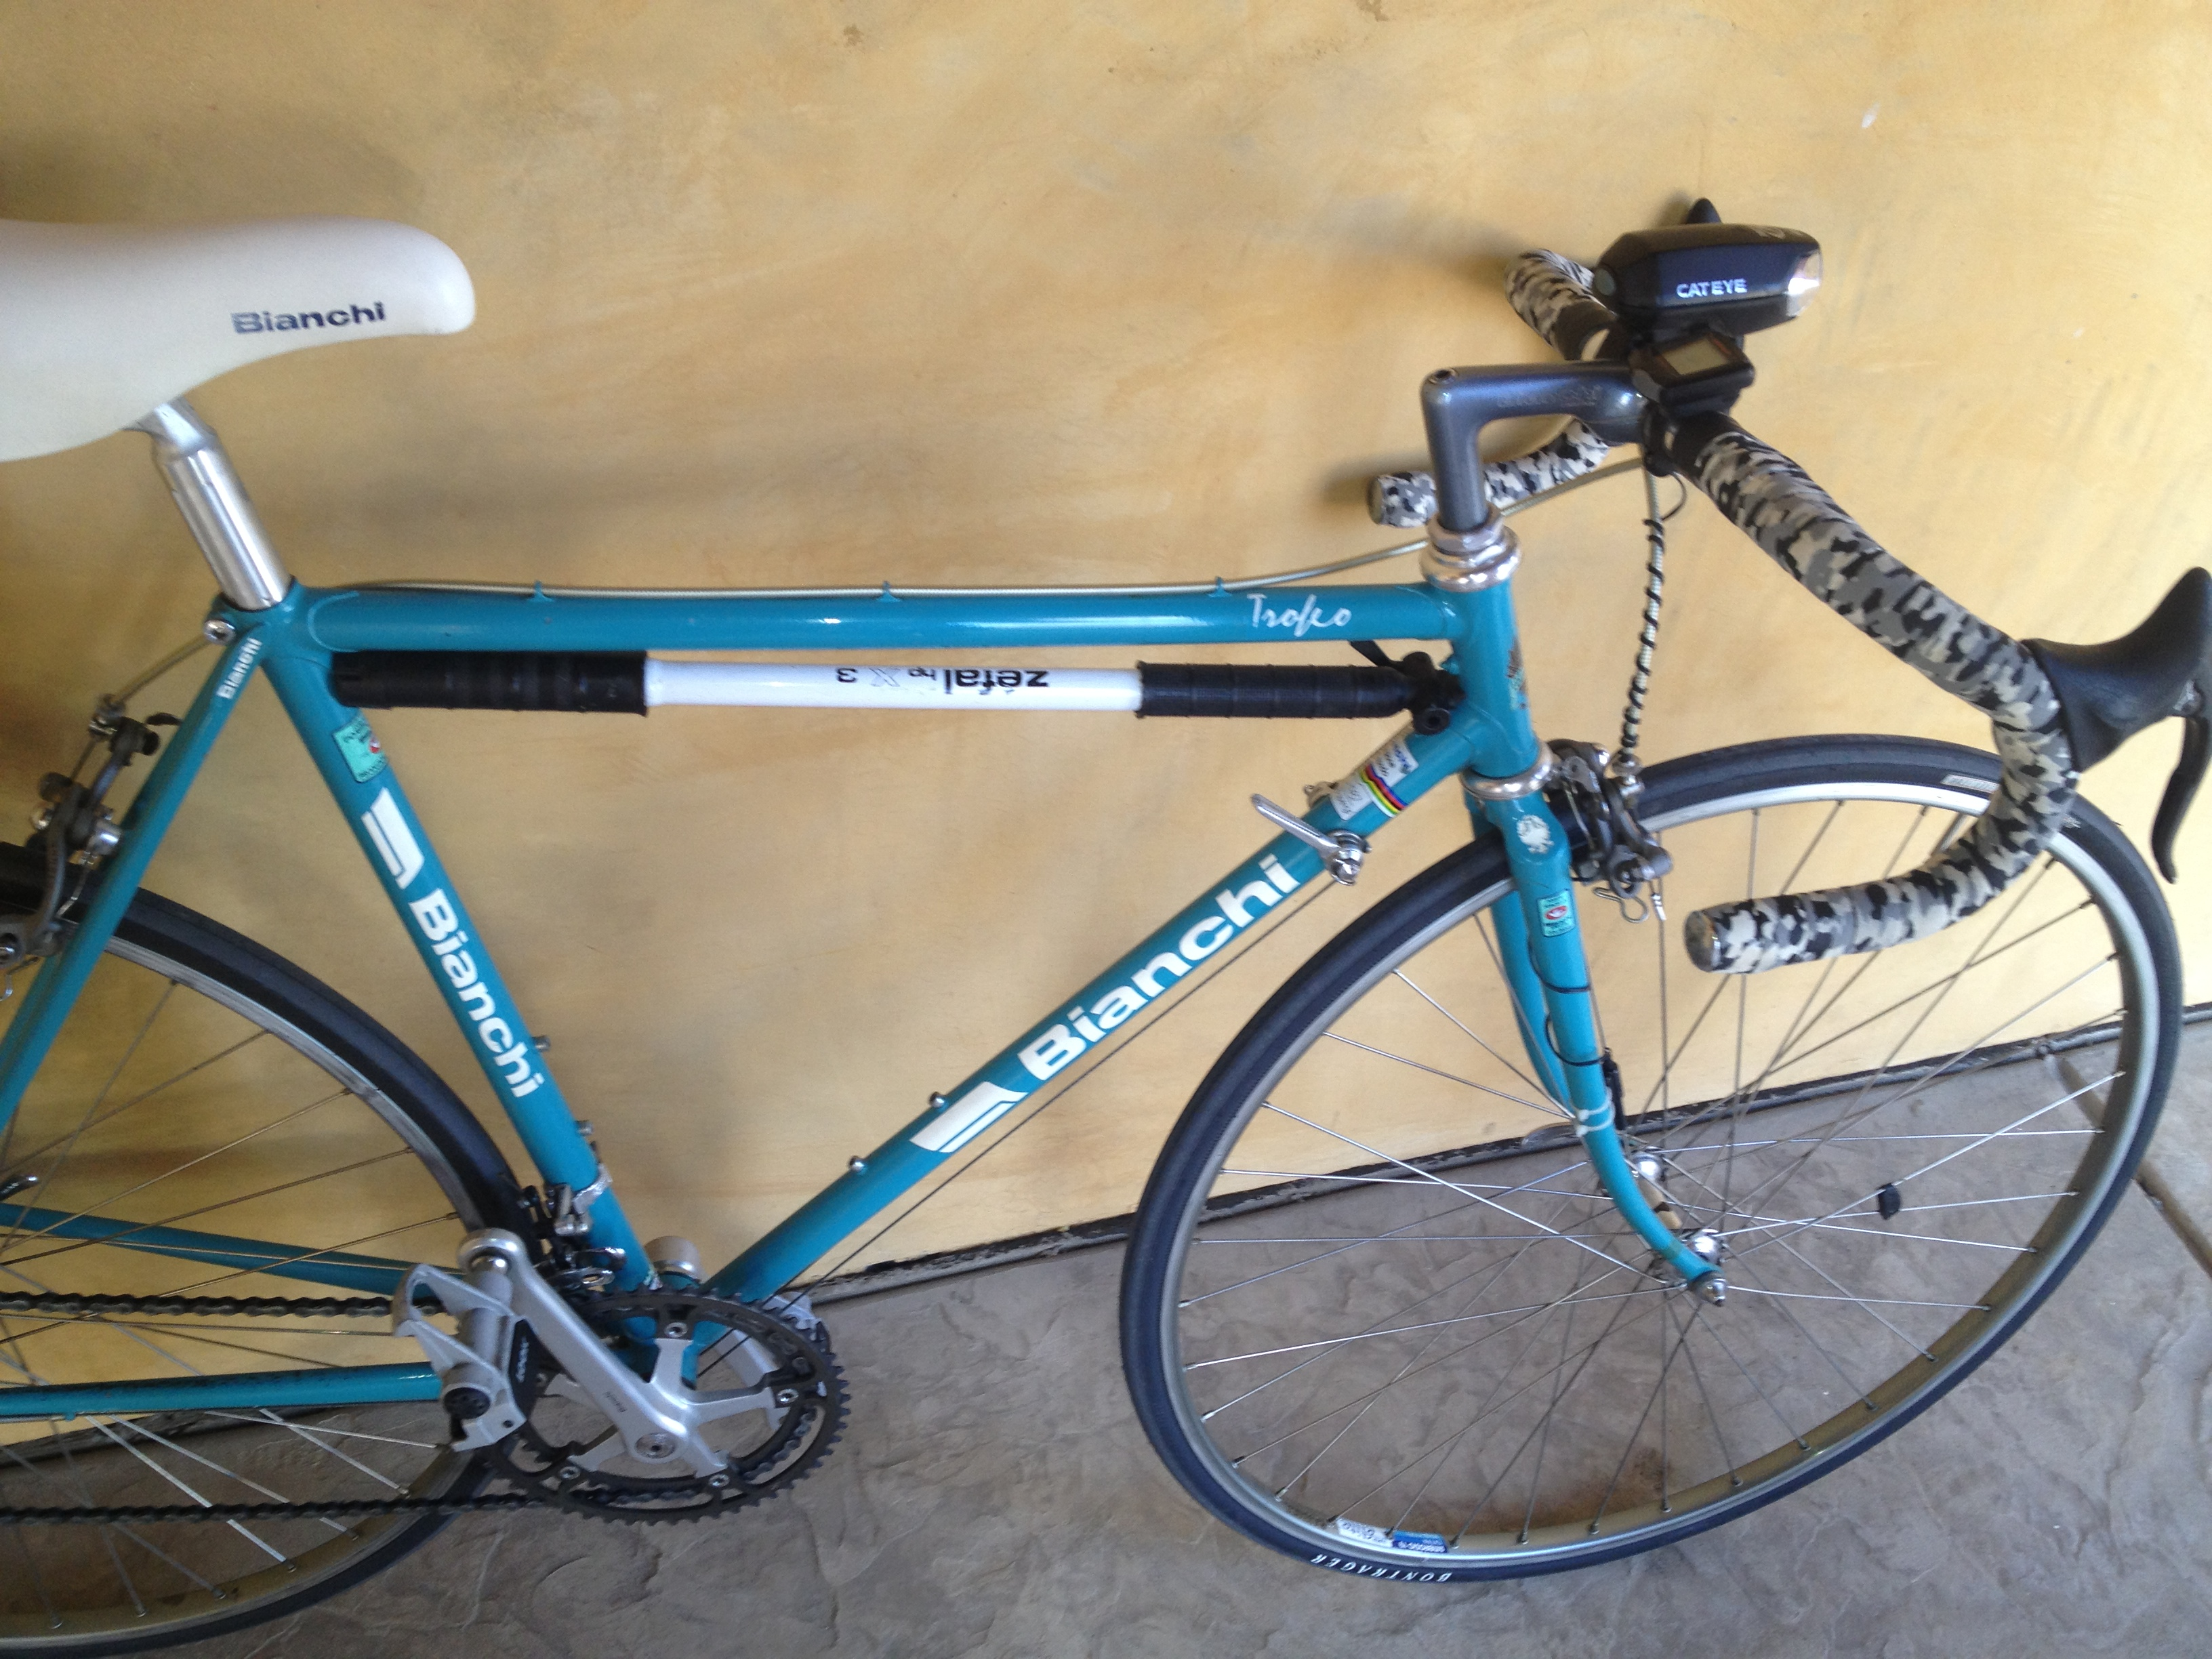 Fitness 197? Bianchi Trofeo, All Original Steel Frame